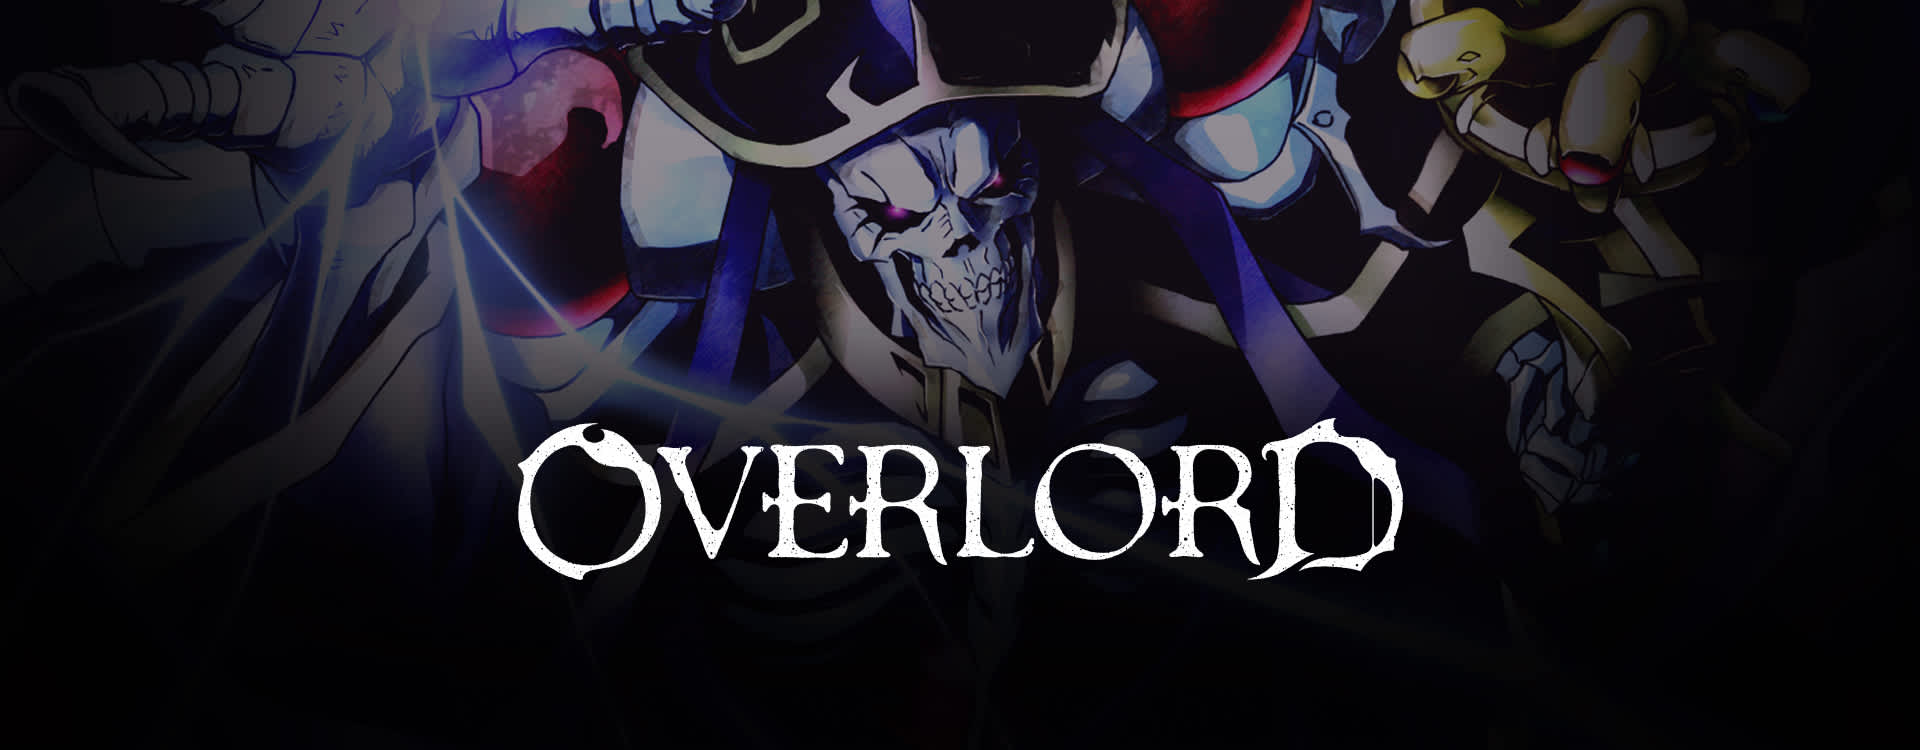 stream watch overlord episodes online sub dub